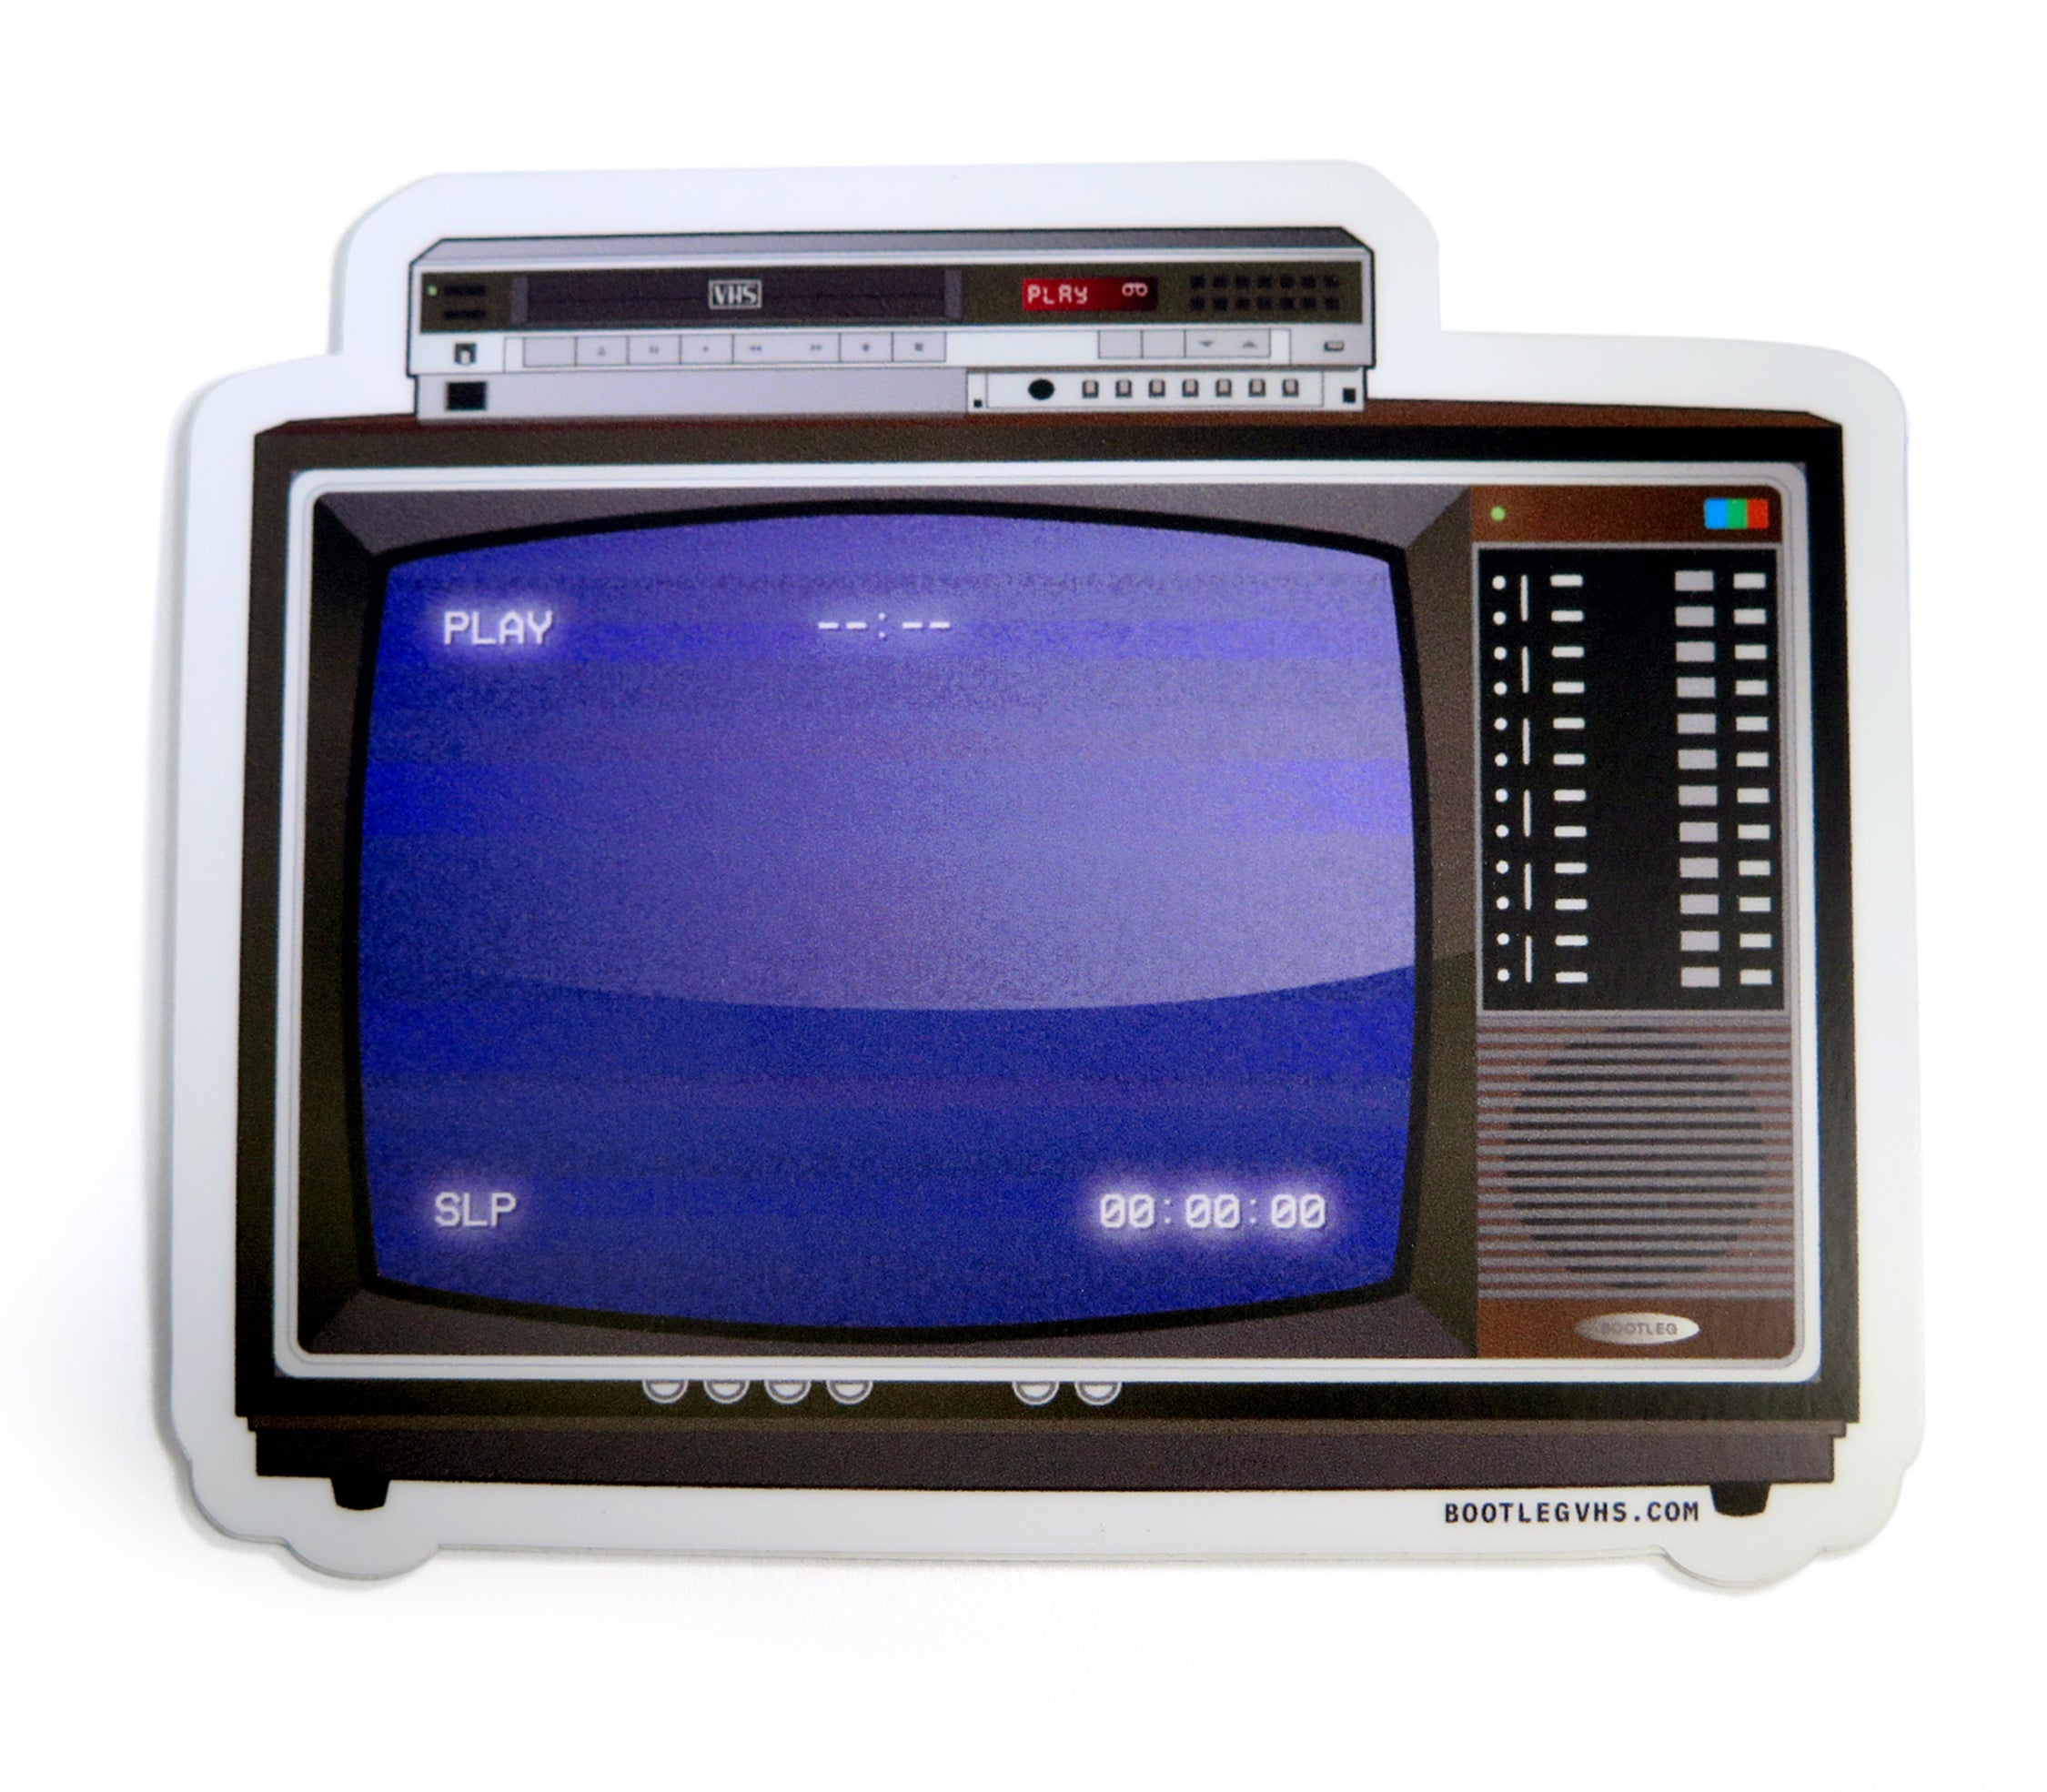 Sticker - 80's TV-VCR Combo Model 1